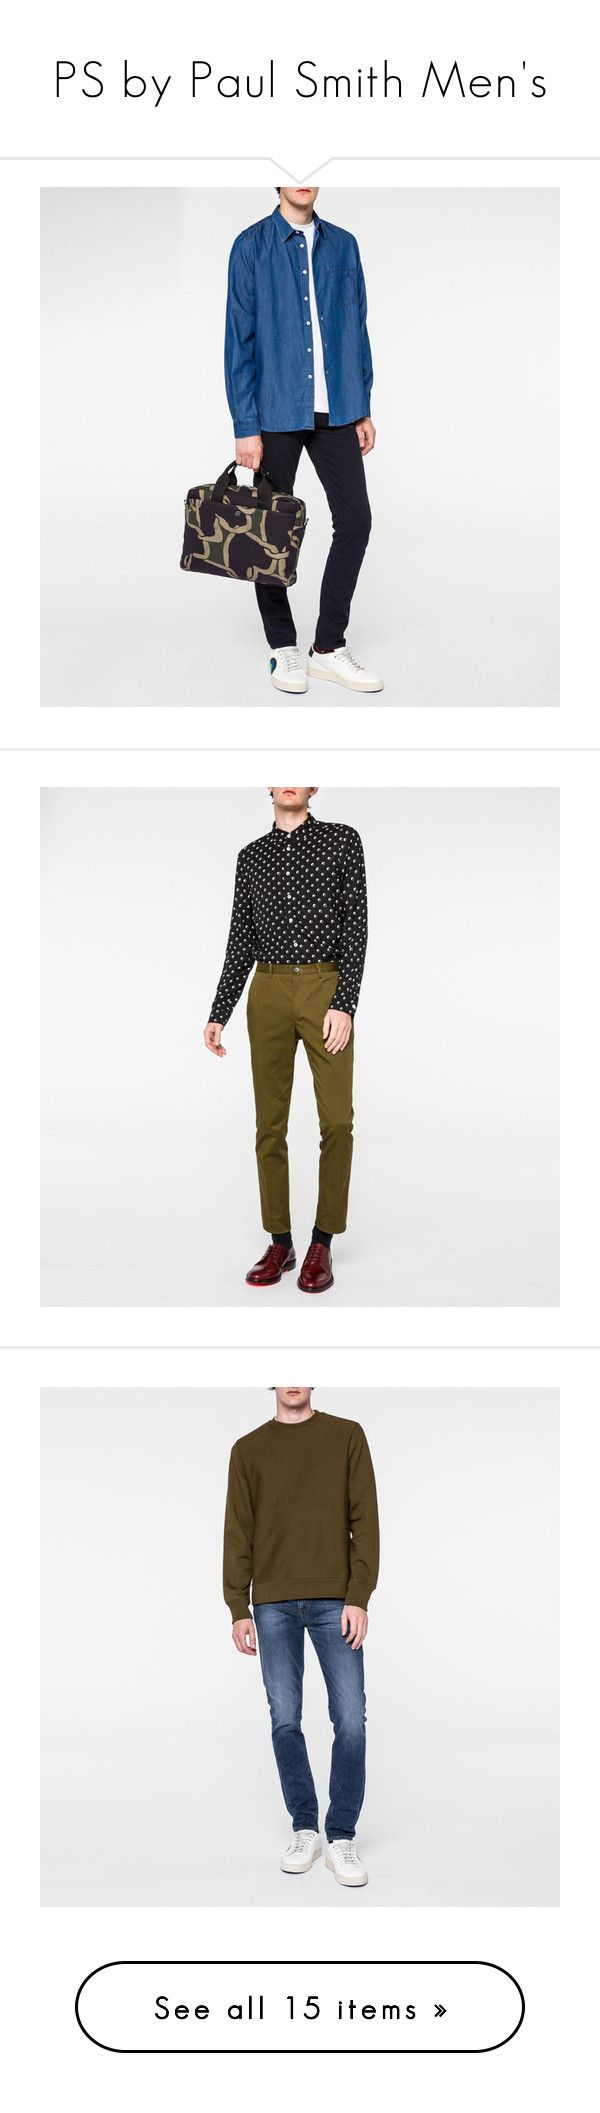 """""""PS by Paul Smith Men's"""" by paulsmith ❤ liked on Polyvore featuring men's fashion, men's clothing, men's shirts, men's casual shirts, paul smith mens shirt, mens woven shirts, mens print shirts, mens polka dot shirt, mens spotty shirt and mens rayon shirts"""